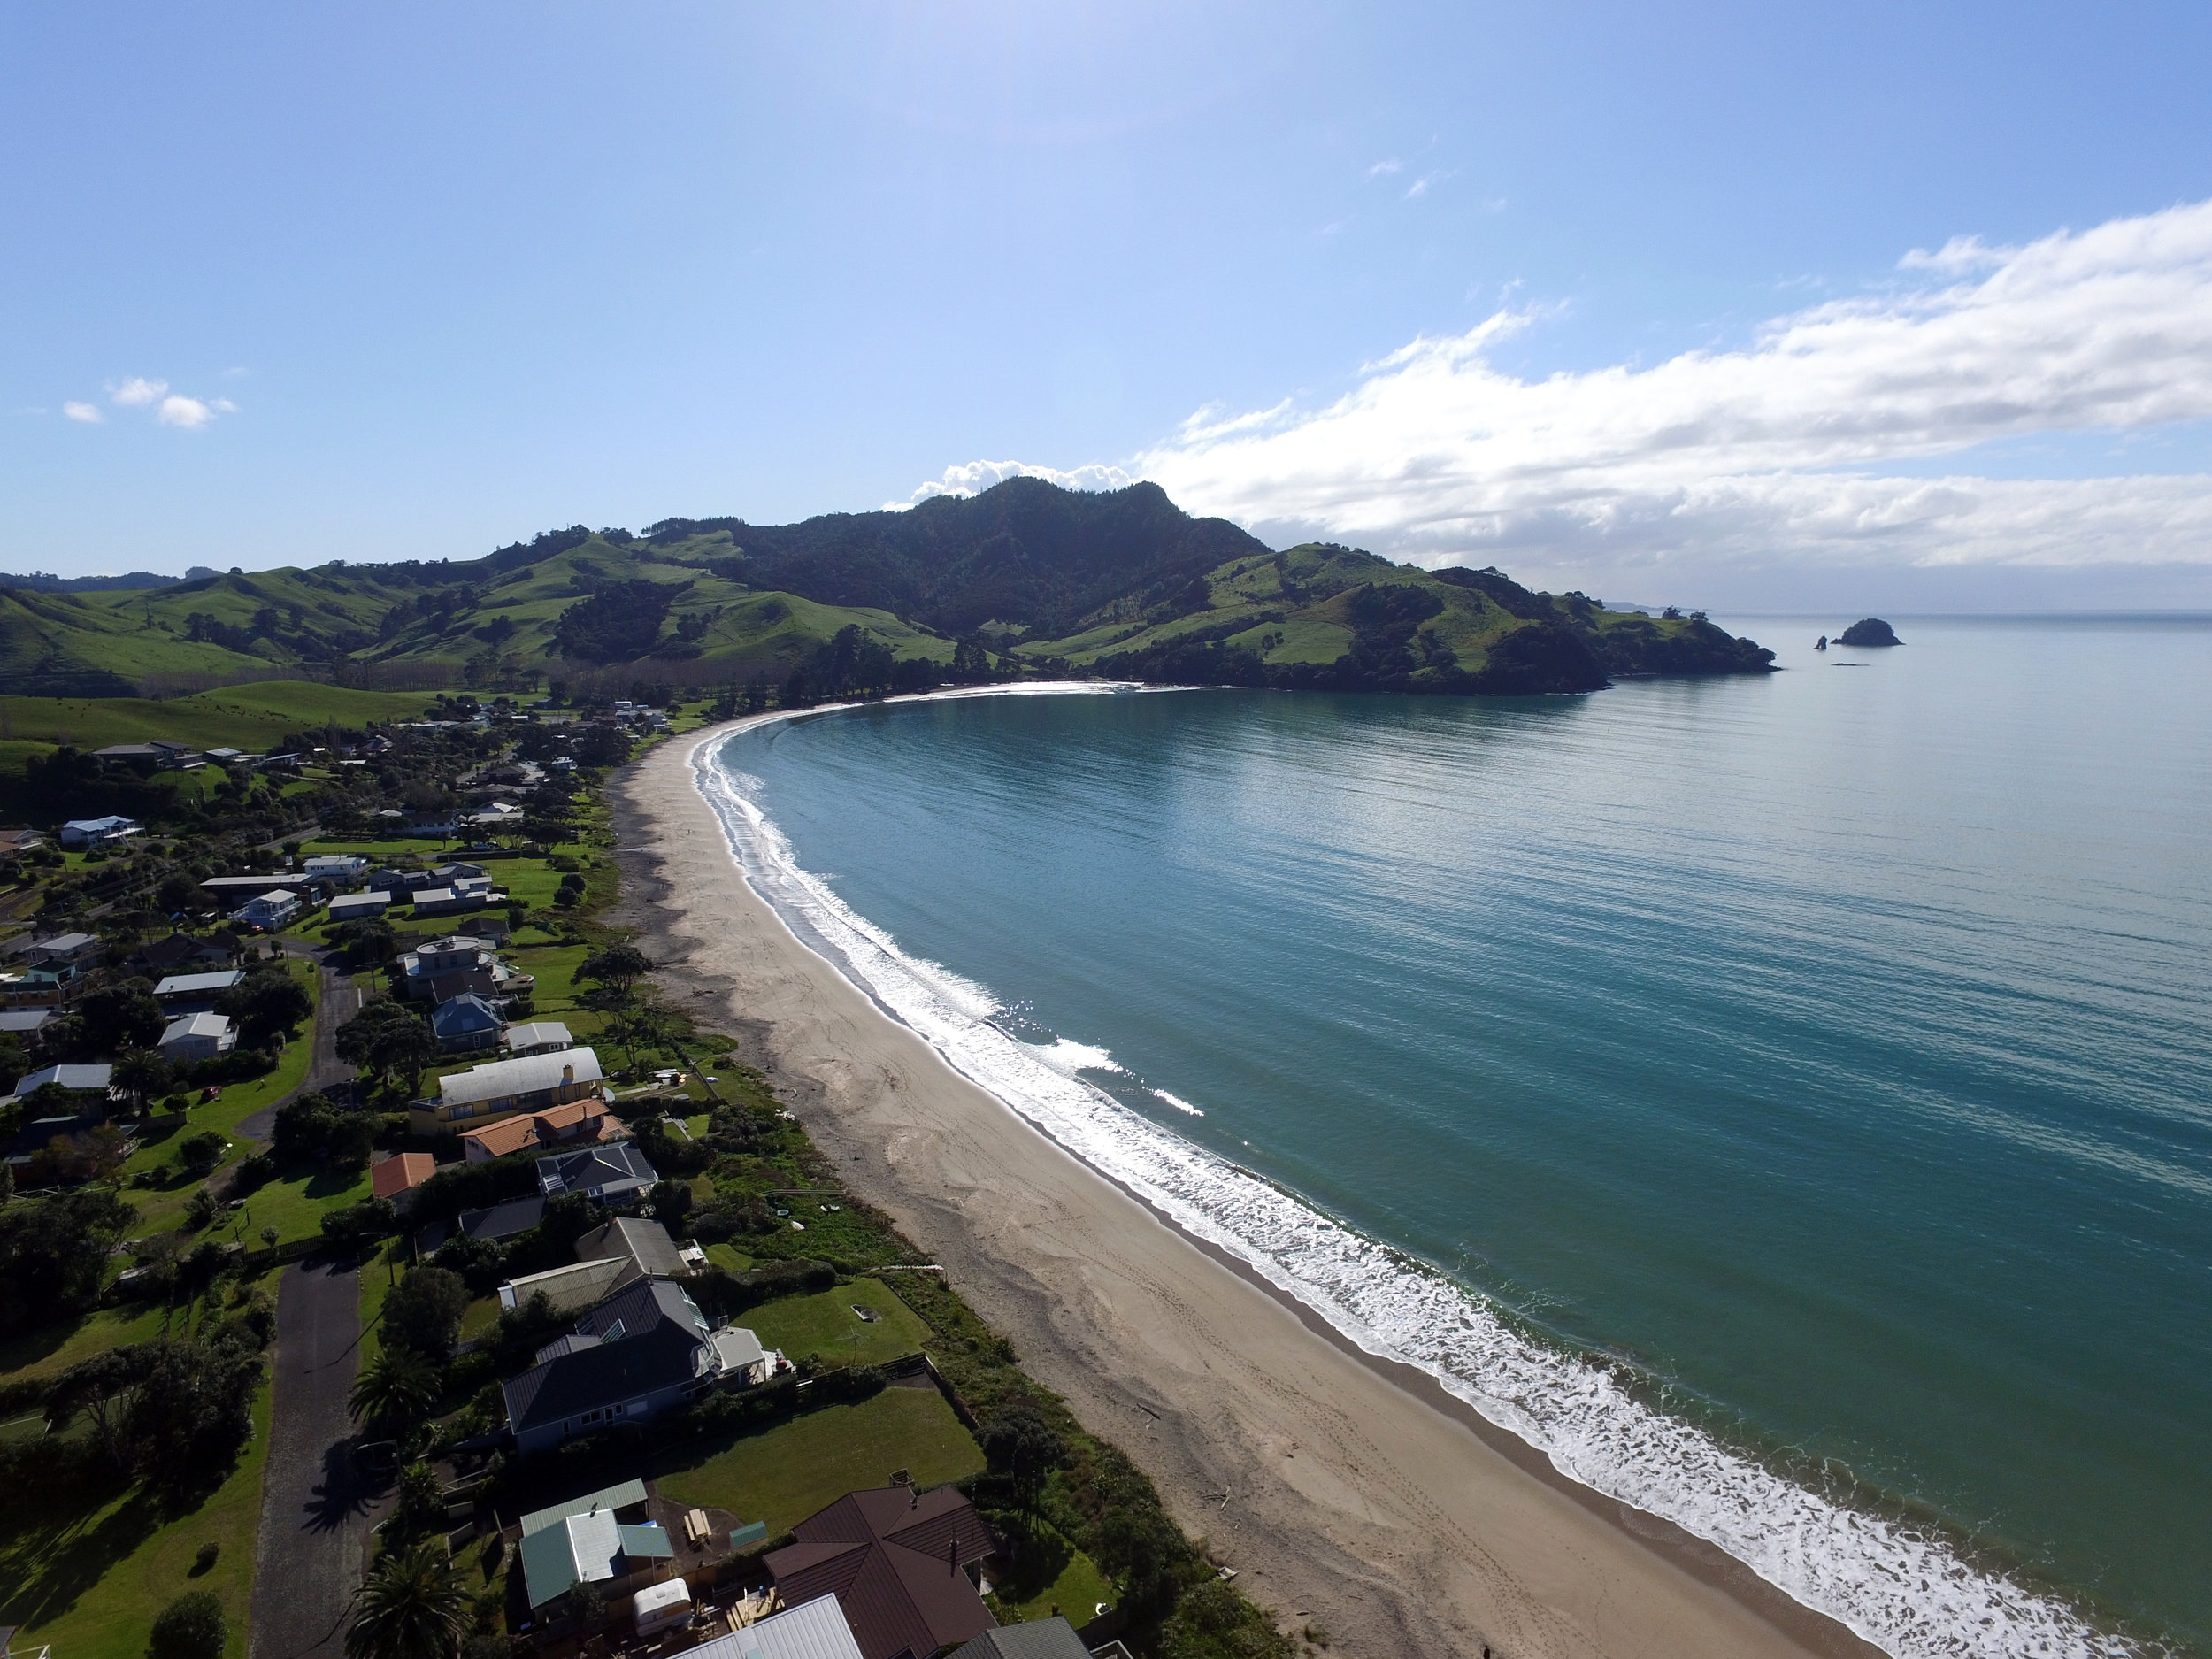 - Wharekaho's vibrant history harks back to 800AD but the area was firmly established in the 13th century by the Ngati Hei iwi Chief, Hei welcomed British explorer Captain James Cook and botanist Joseph Banks to his shores in 1769.